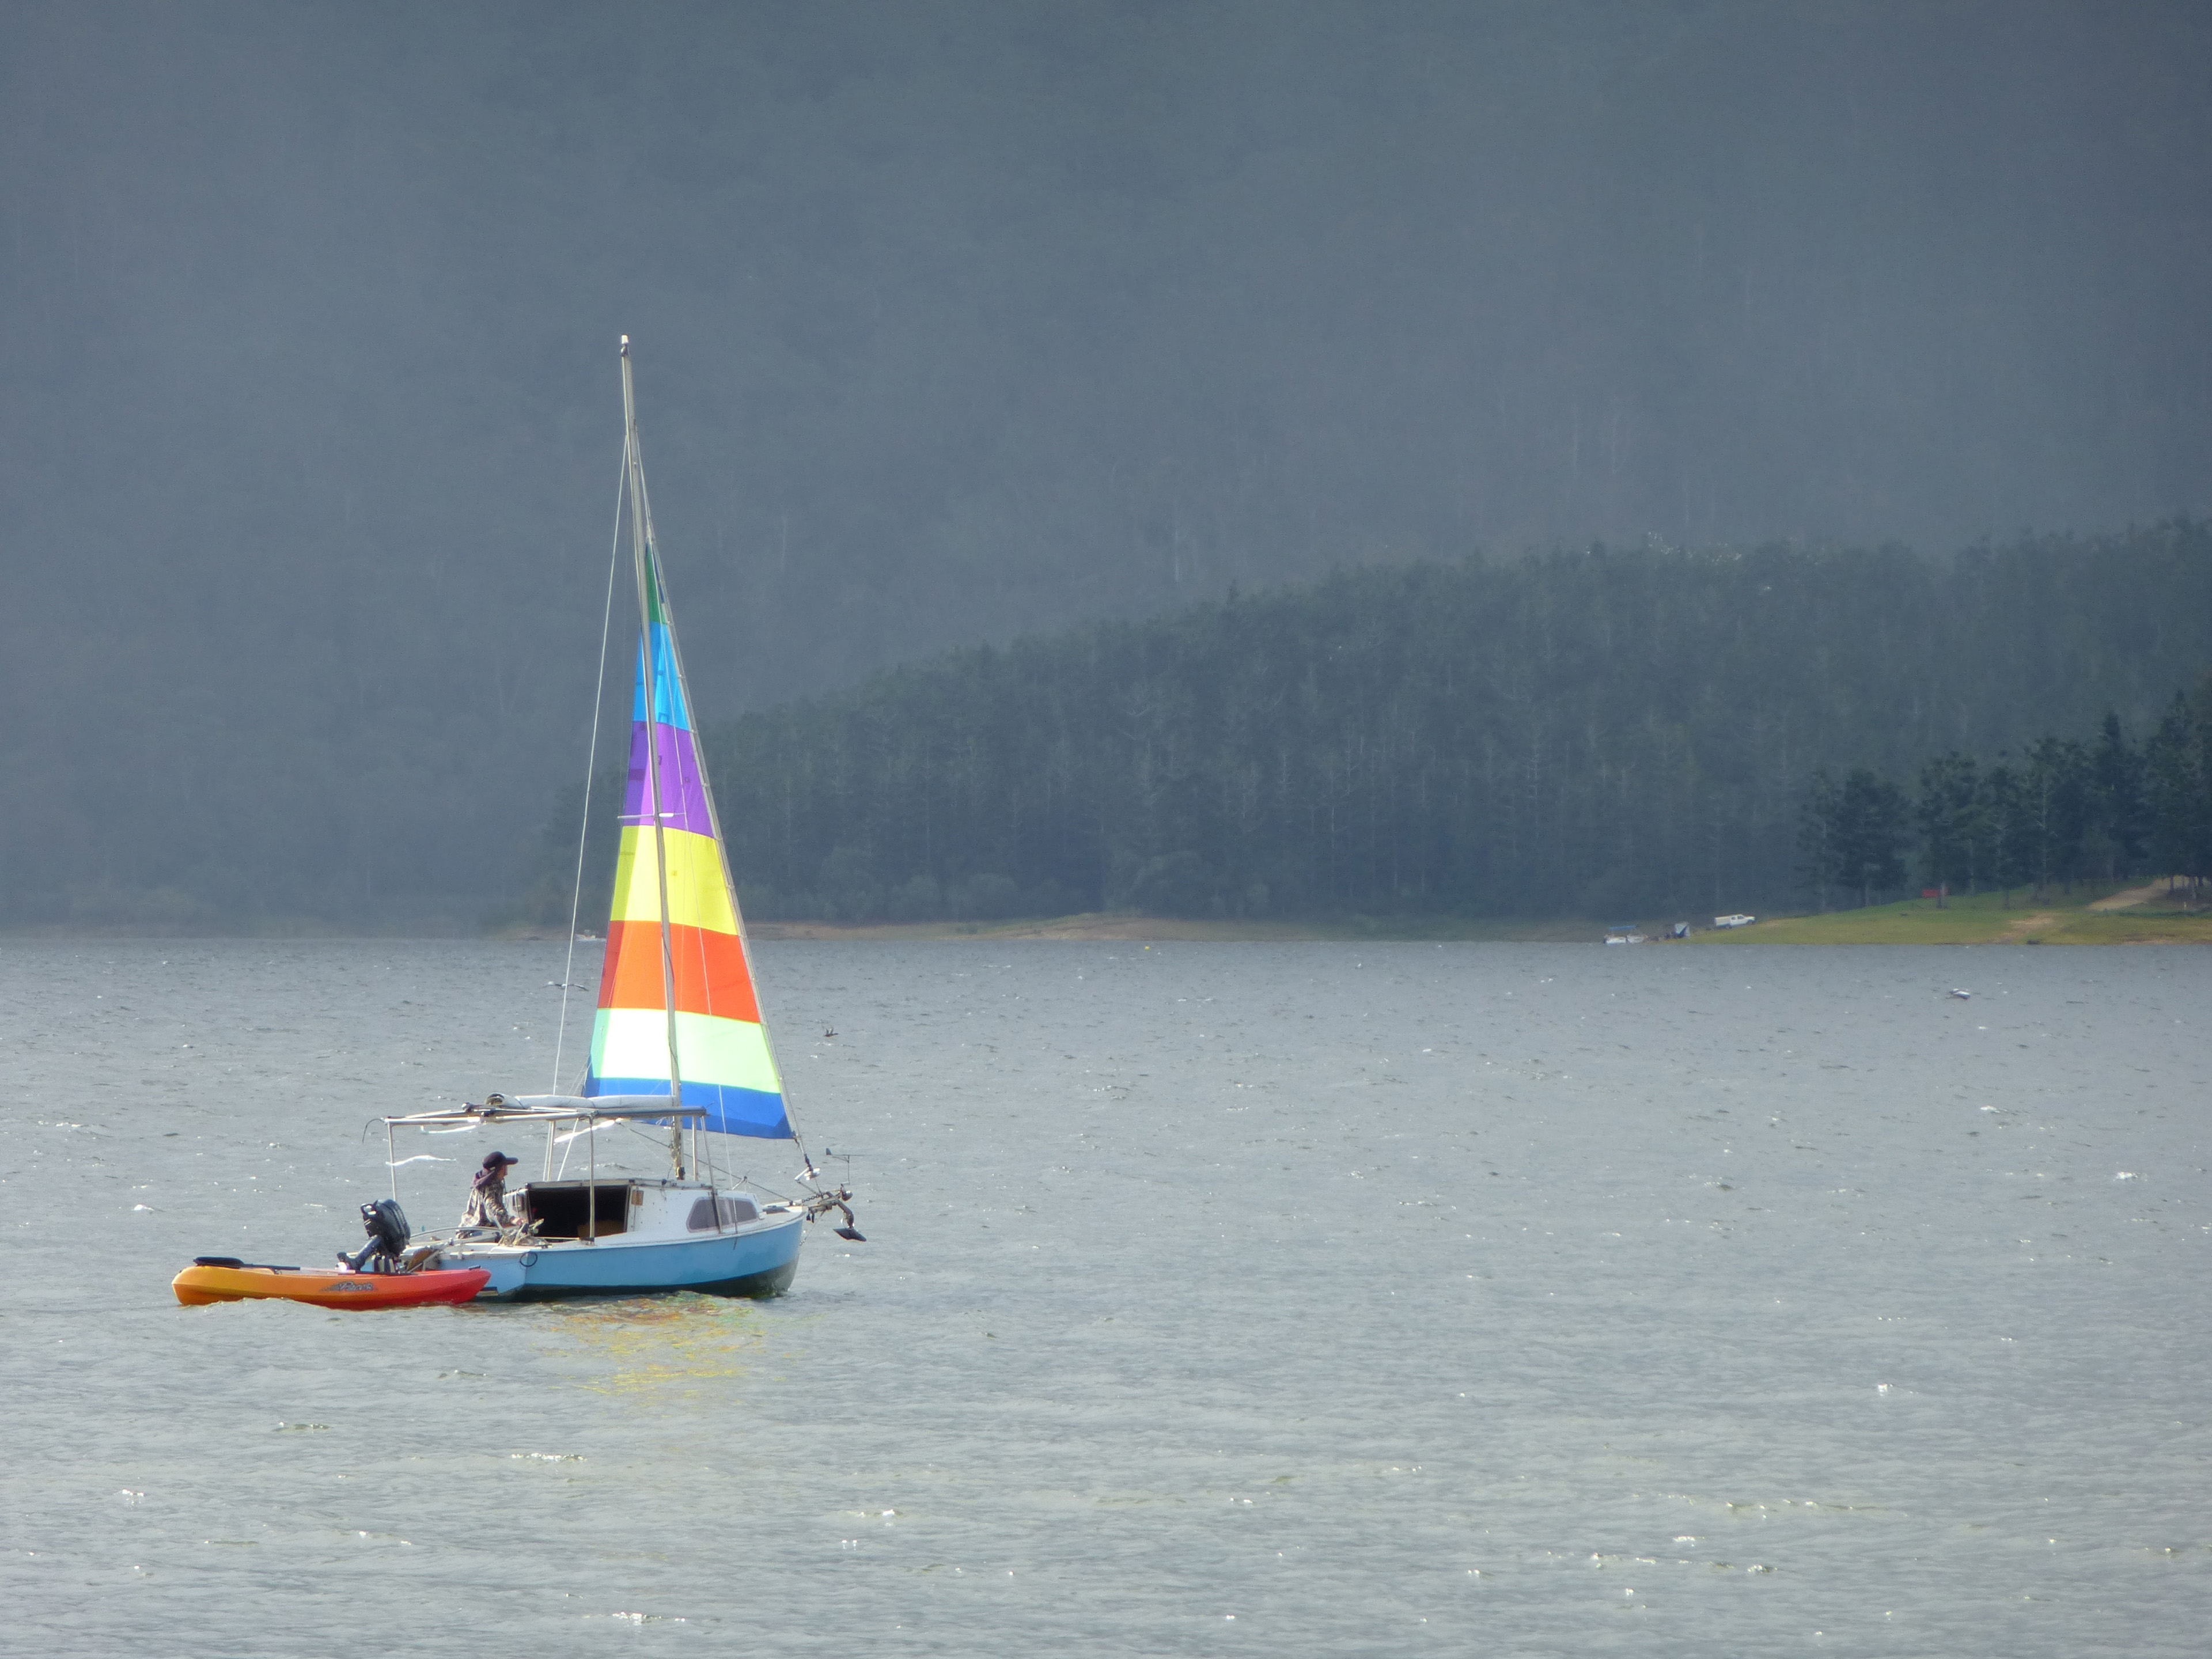 Small sailboat with a single colourful sail towing a dinghy offshore on a misty cold day with the coastline visible in the distance